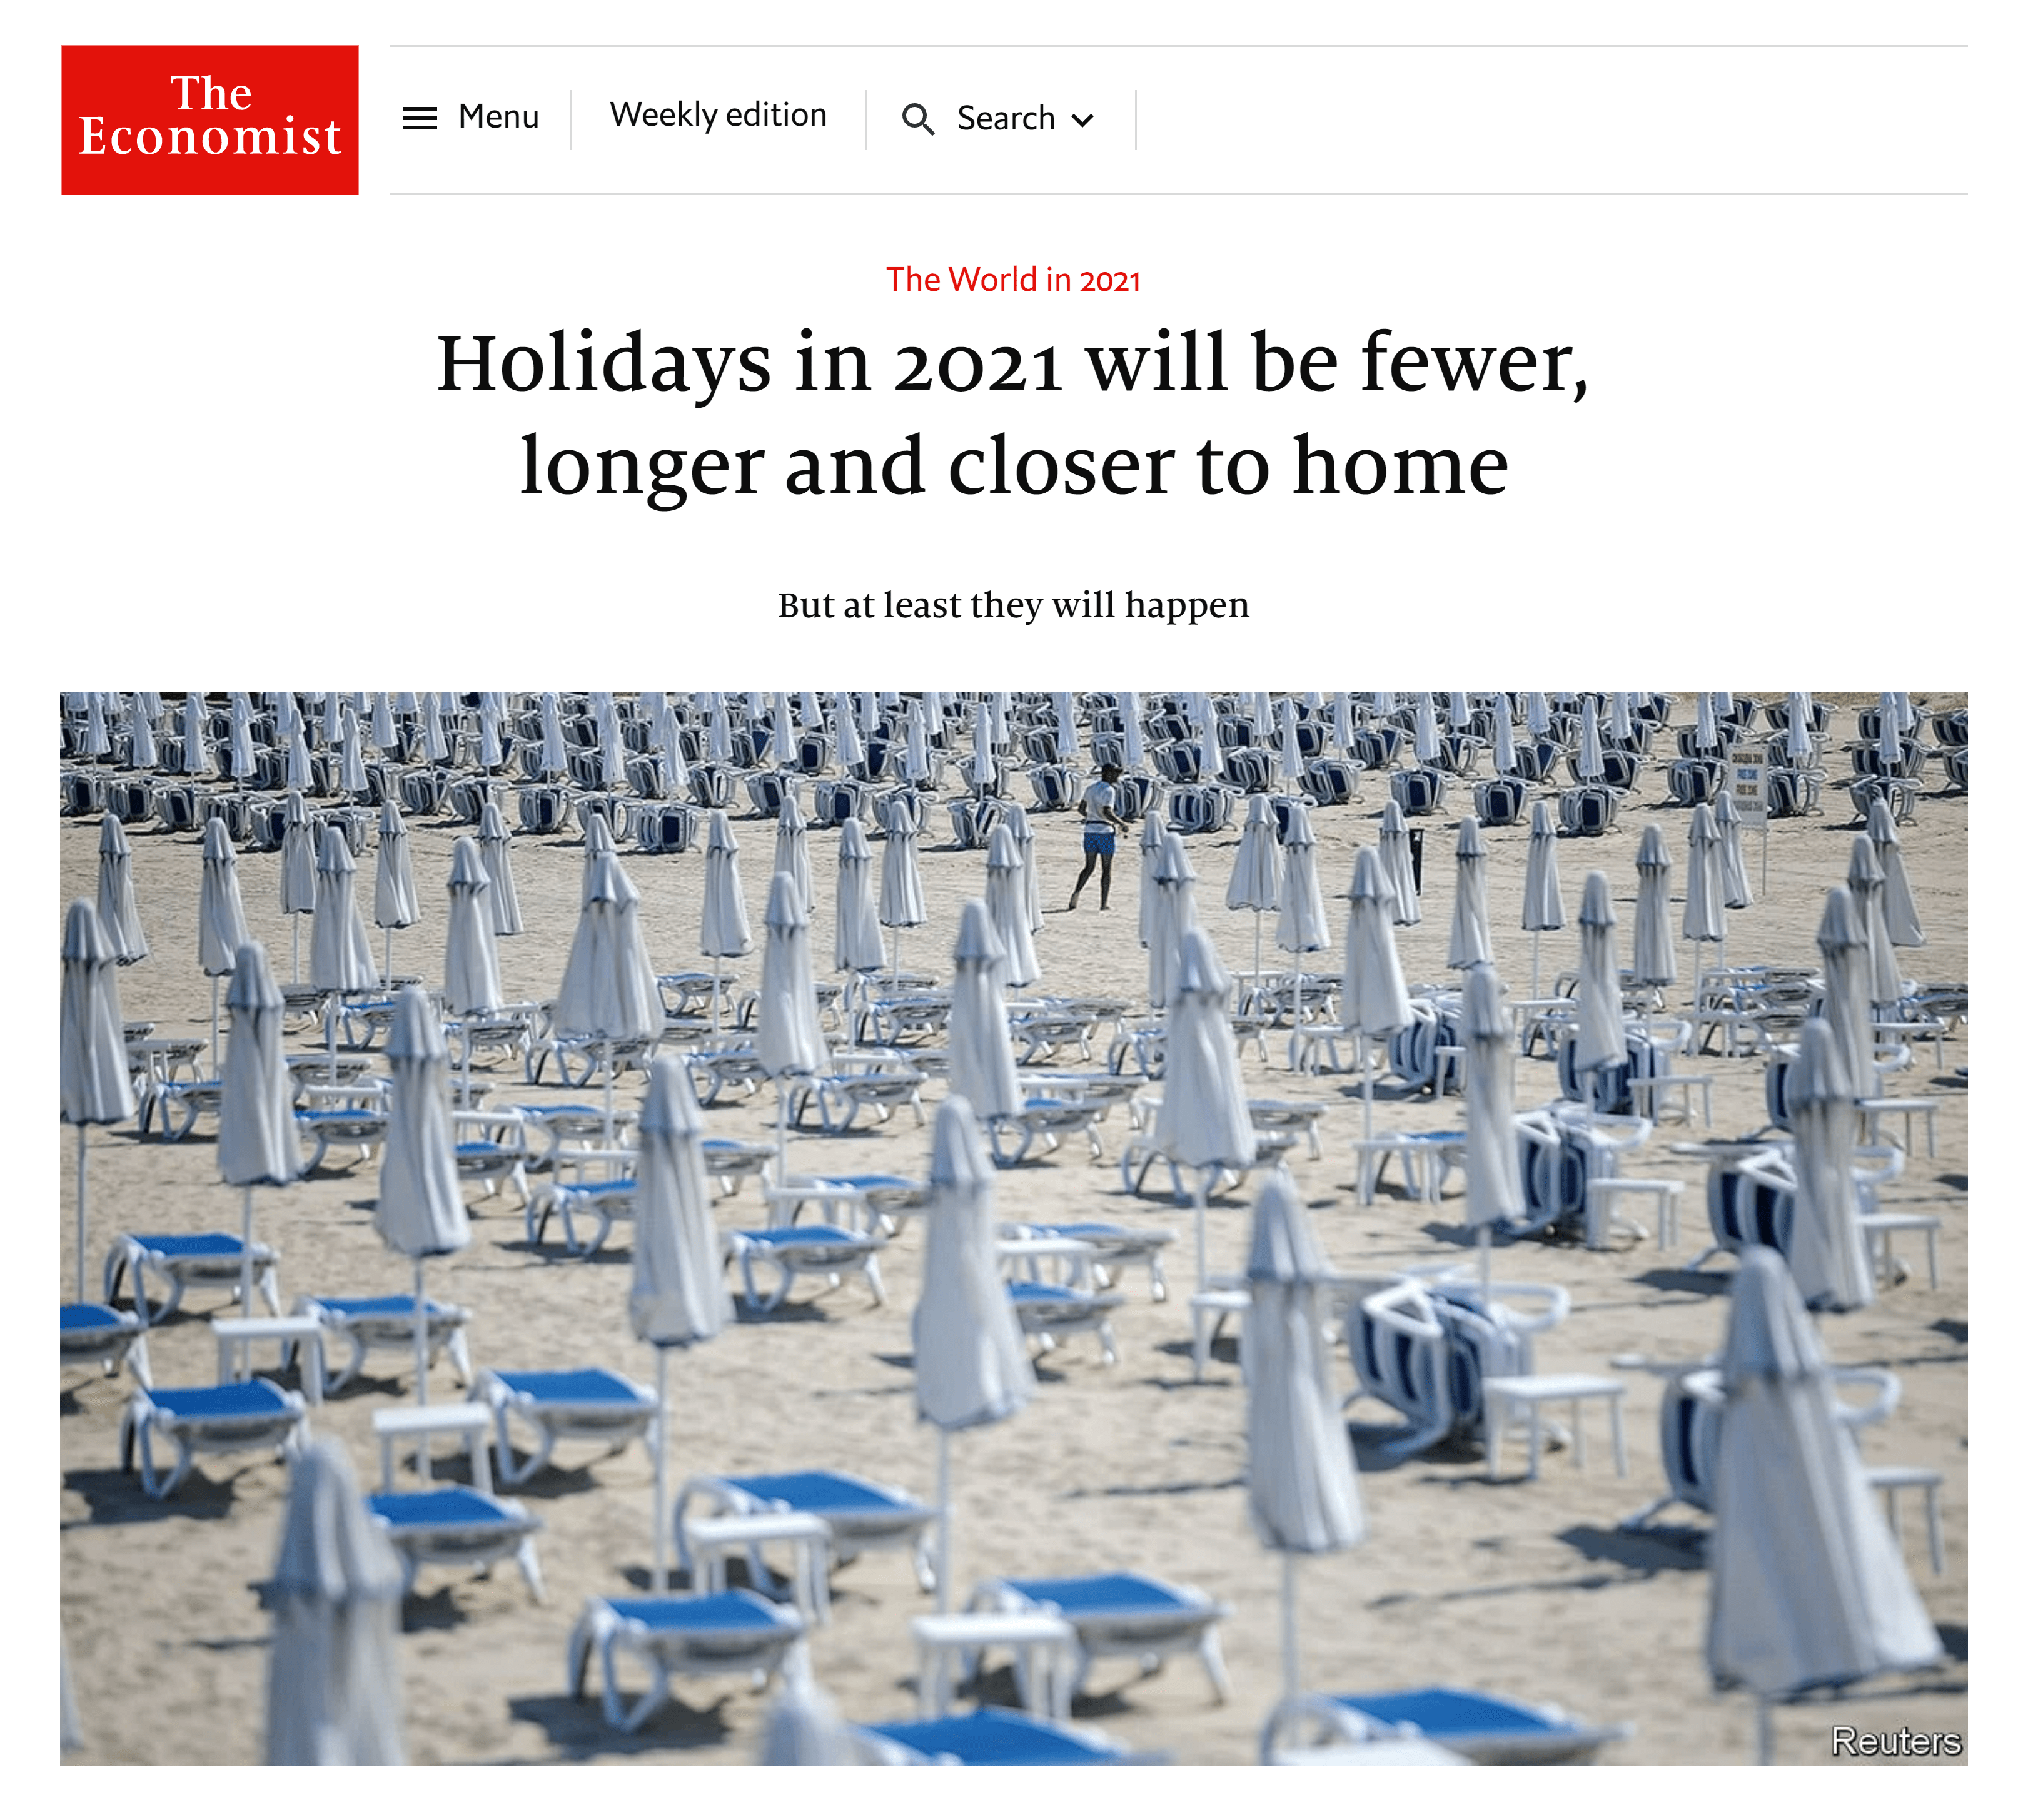 economist-holidays-in-2021-min.png